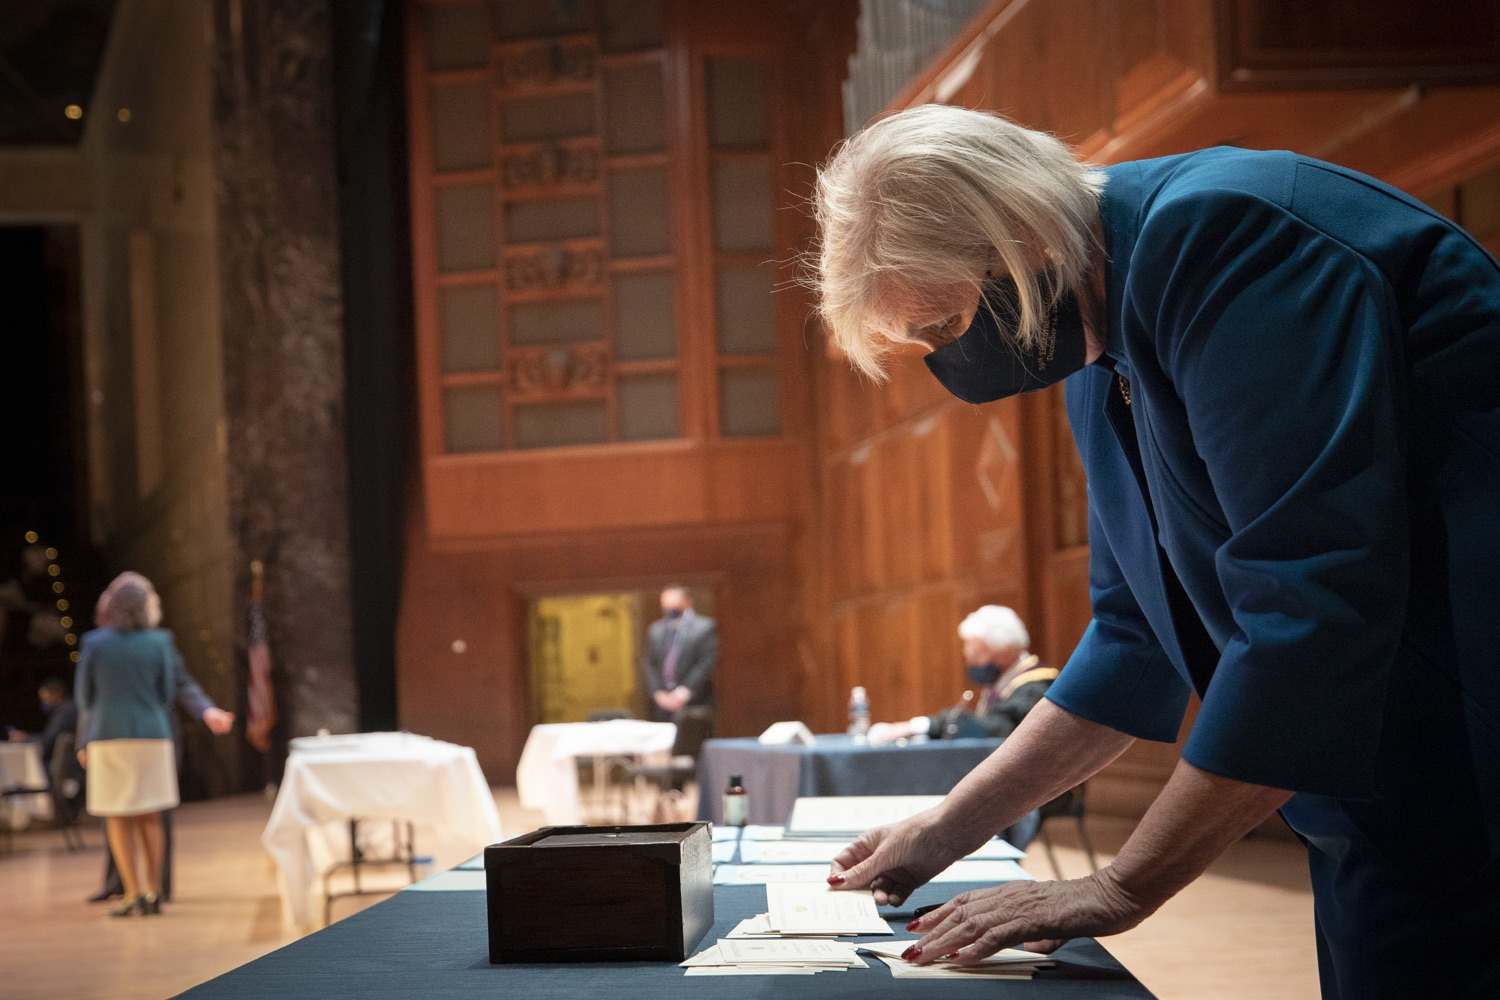 """<a href=""""https://filesource.wostreaming.net/commonwealthofpa/photo/18323_59_electoral_college_dz_028.jpg"""" target=""""_blank"""">⇣Download Photo<br></a>Teller, Mary Esther Van Shura, counting ballots.  Secretary of State Kathy Boockvar presided over the 59th Pennsylvania Electoral College meeting at noon today, during which the commonwealths 20 electors unanimously voted for Joseph R. Biden for president and Kamala D. Harris for vice president of the United States.  Harrisburg, PA  December 14, 2020"""